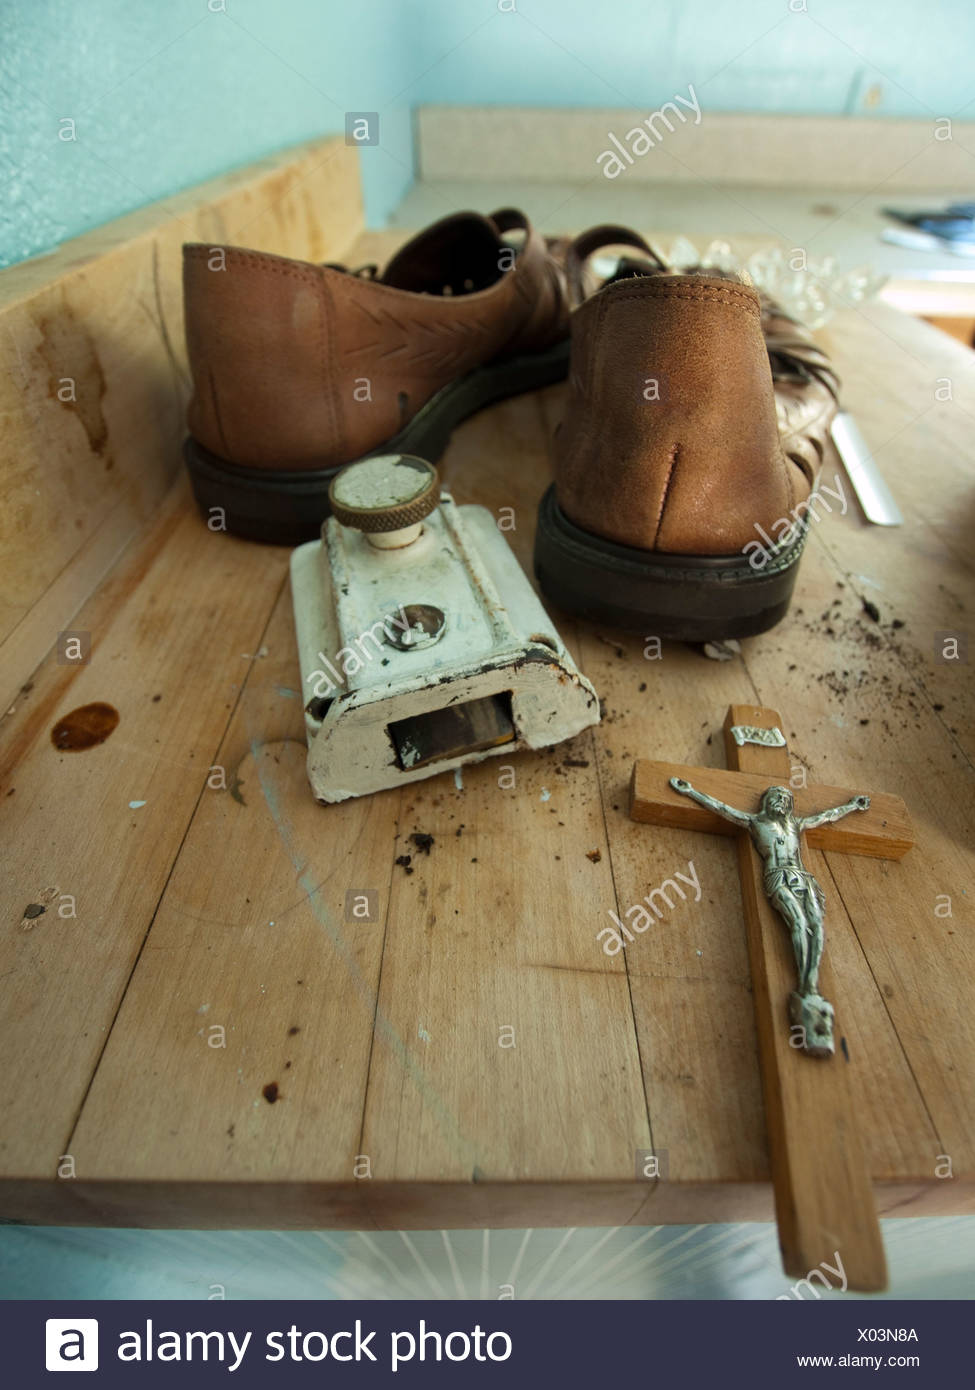 Personal property left behind by the former owners in a foreclosed home in Richmond, California, United States - Stock Image